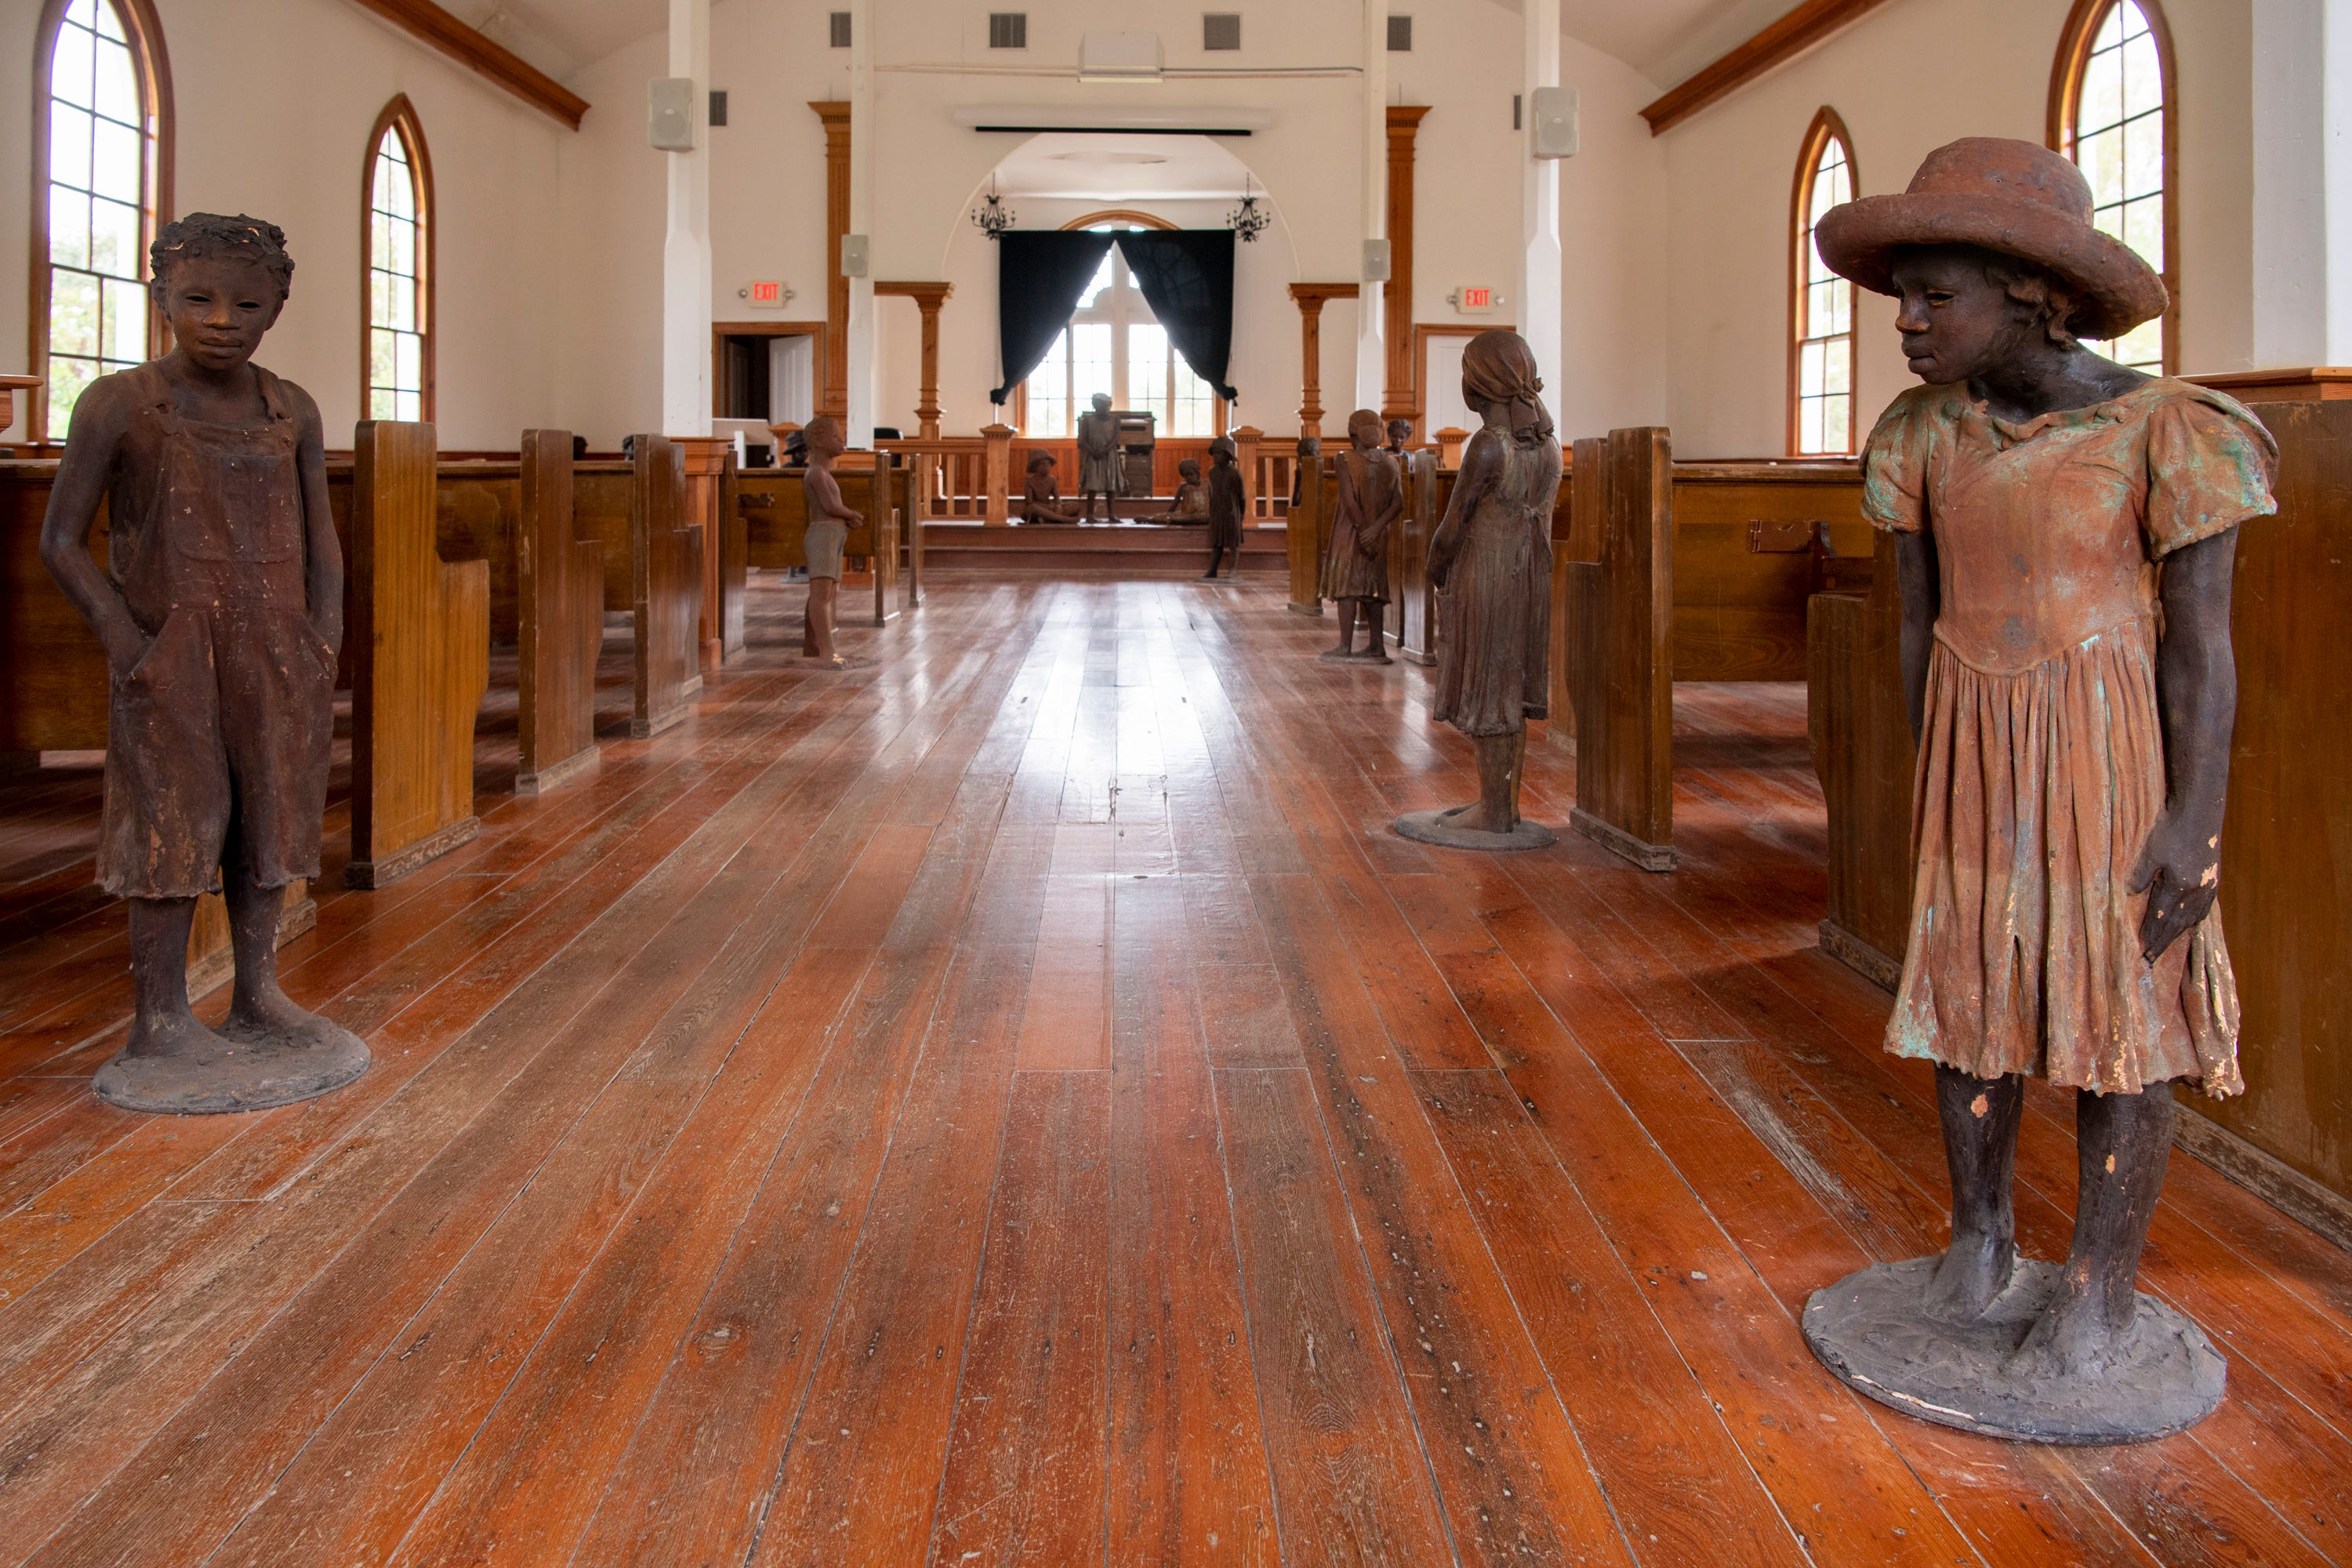 Sculptures of children made by artist Woodrow Nash at the Whitney Plantation Museum, across the Mississippi River from Reserve.  The sculptures stand throughout the Antioch Church built in 1870 by formerly enslaved people.